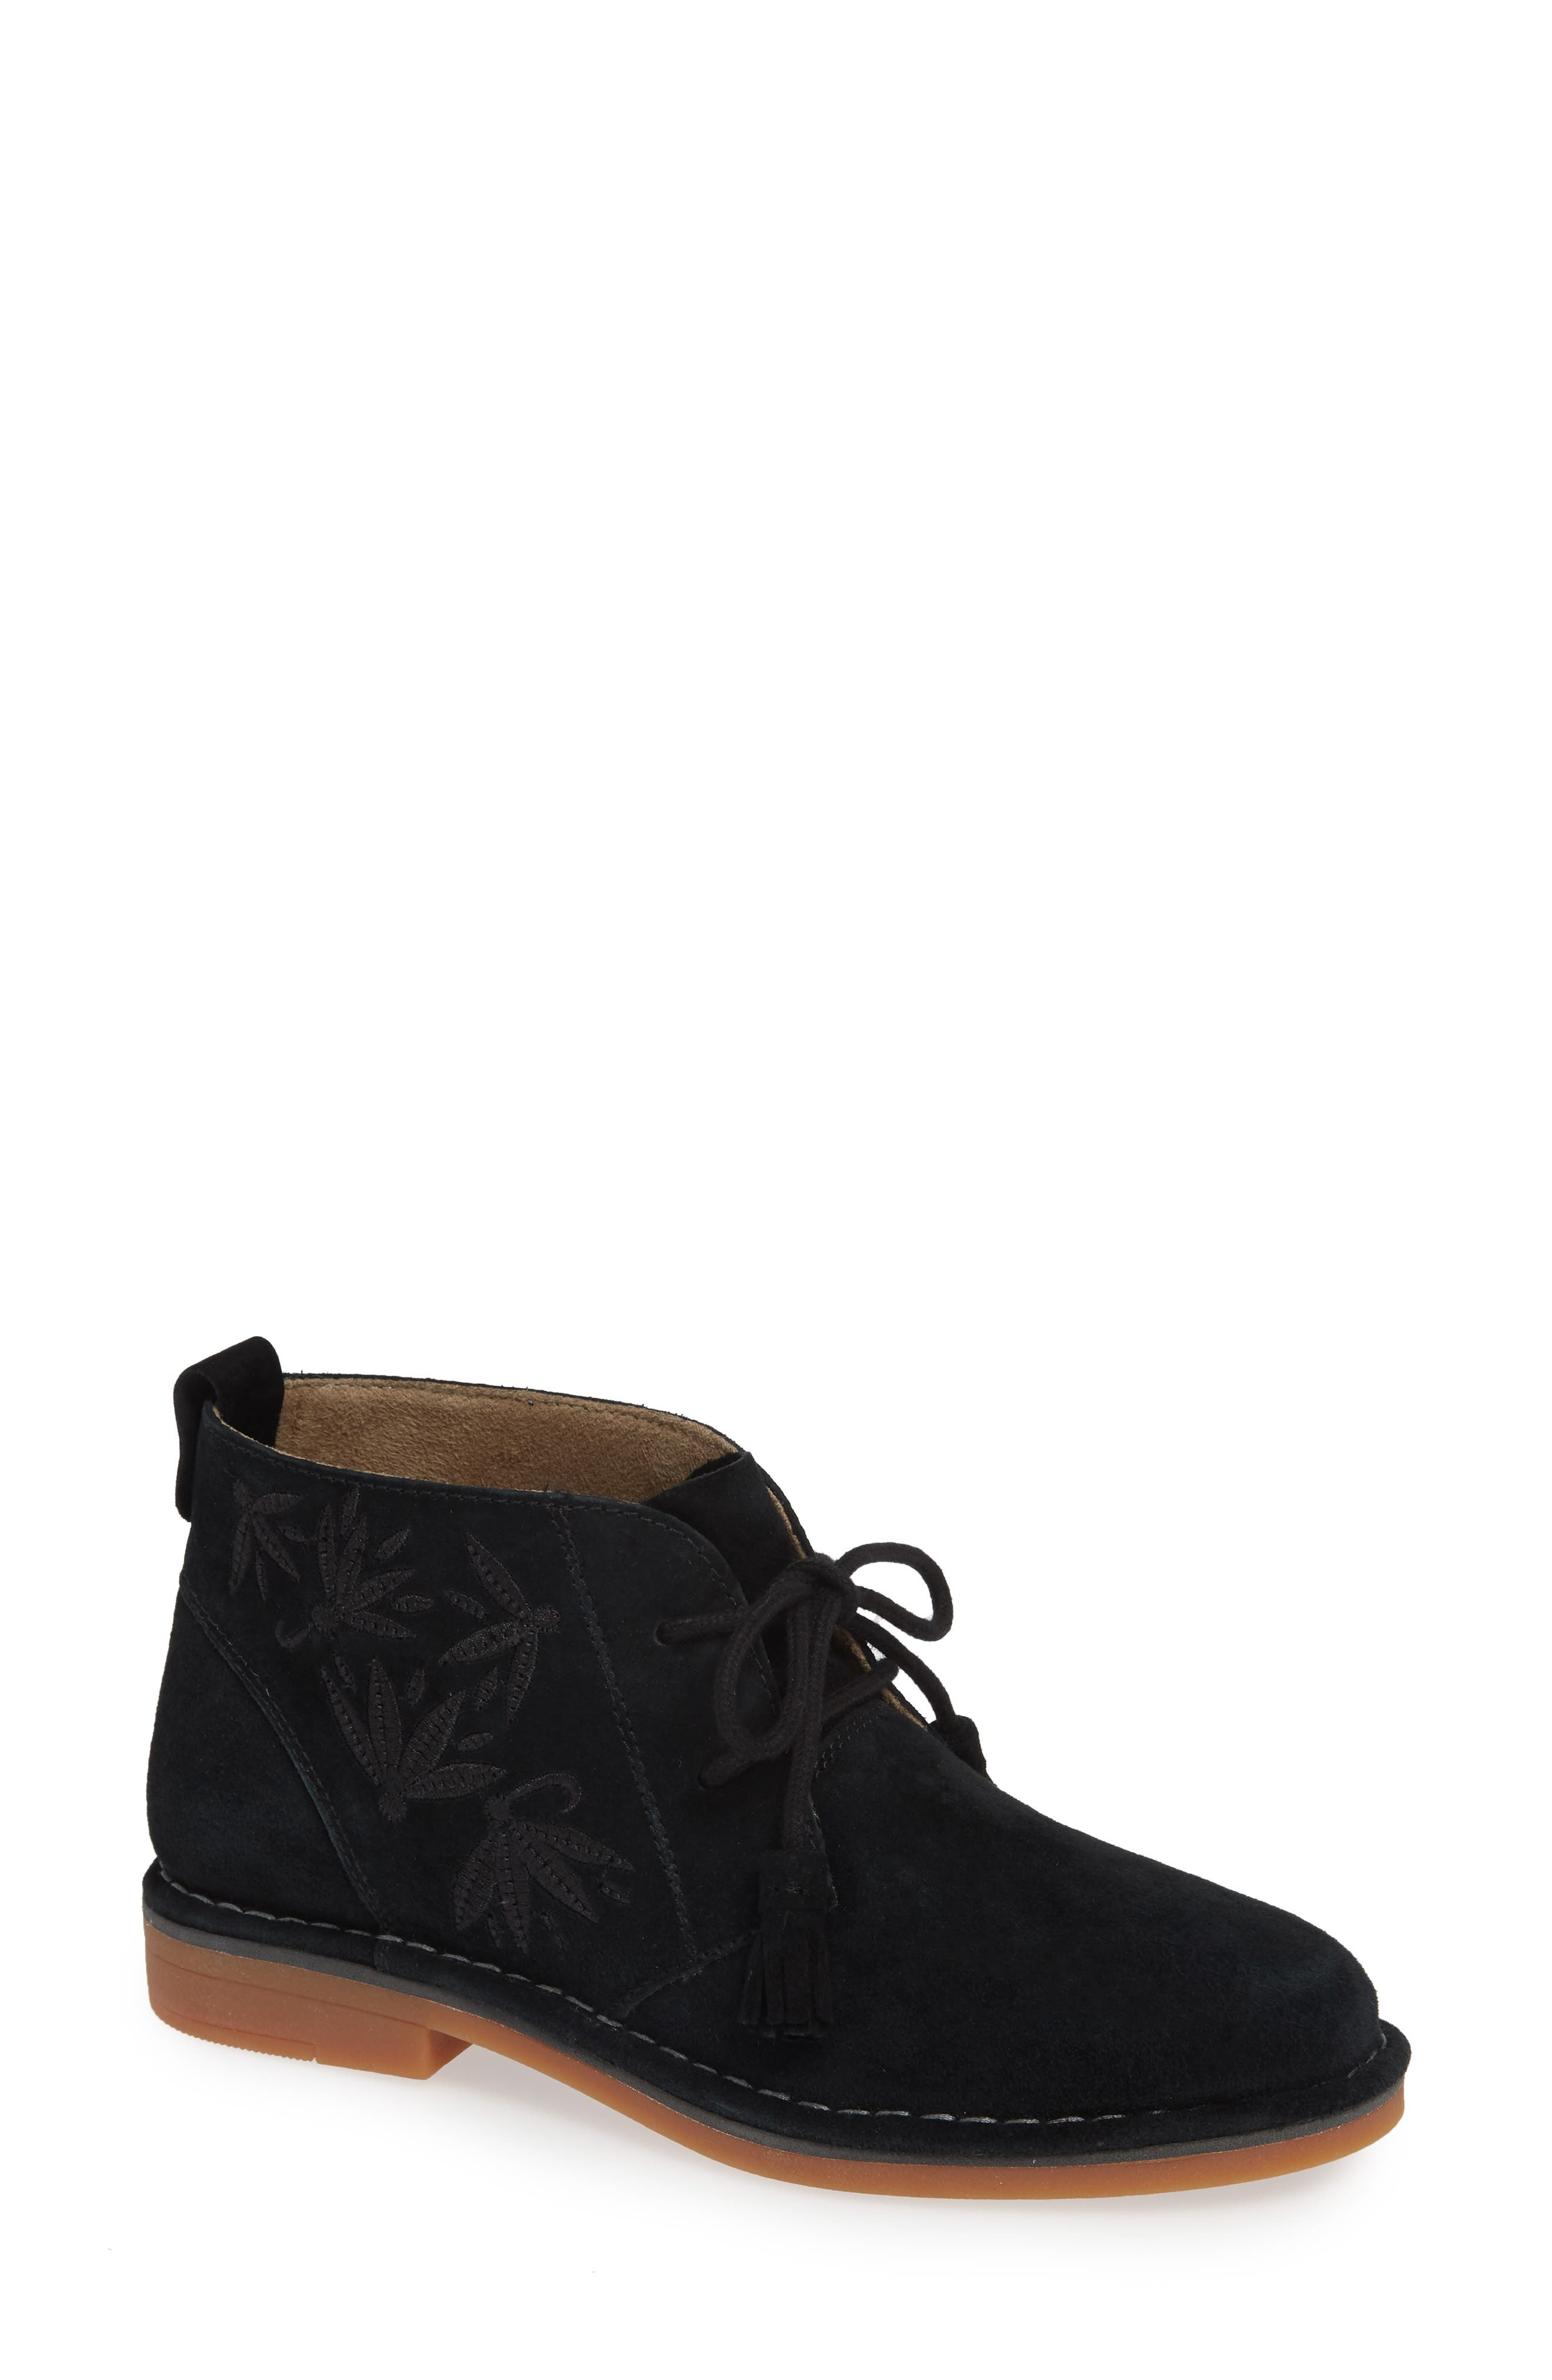 HUSH PUPPIES<SUP>®</SUP> Cyra Catelyn Chukka Bootie, Main, color, BLACK SUEDE